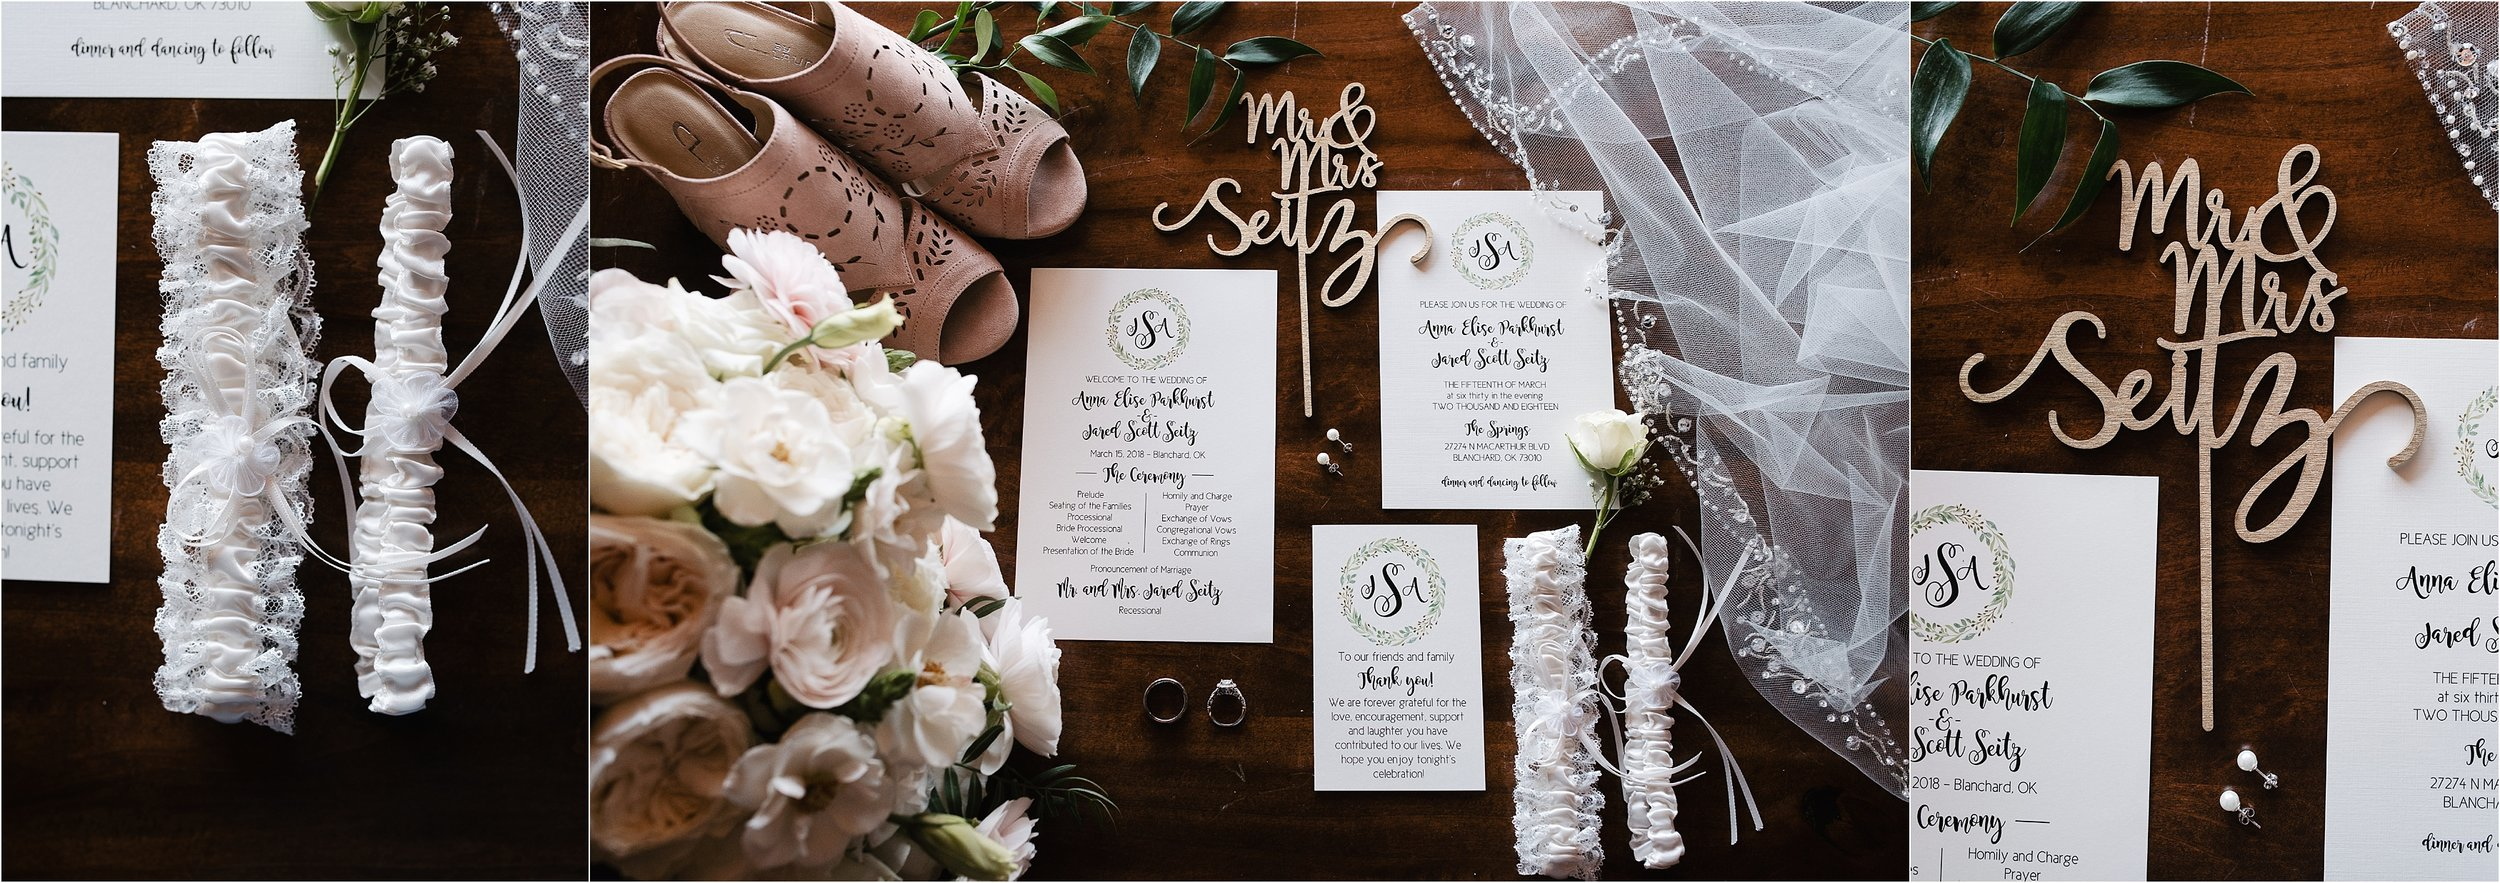 oklahoma wedding photographer invitations stationary rings borrowed blue wedding decor